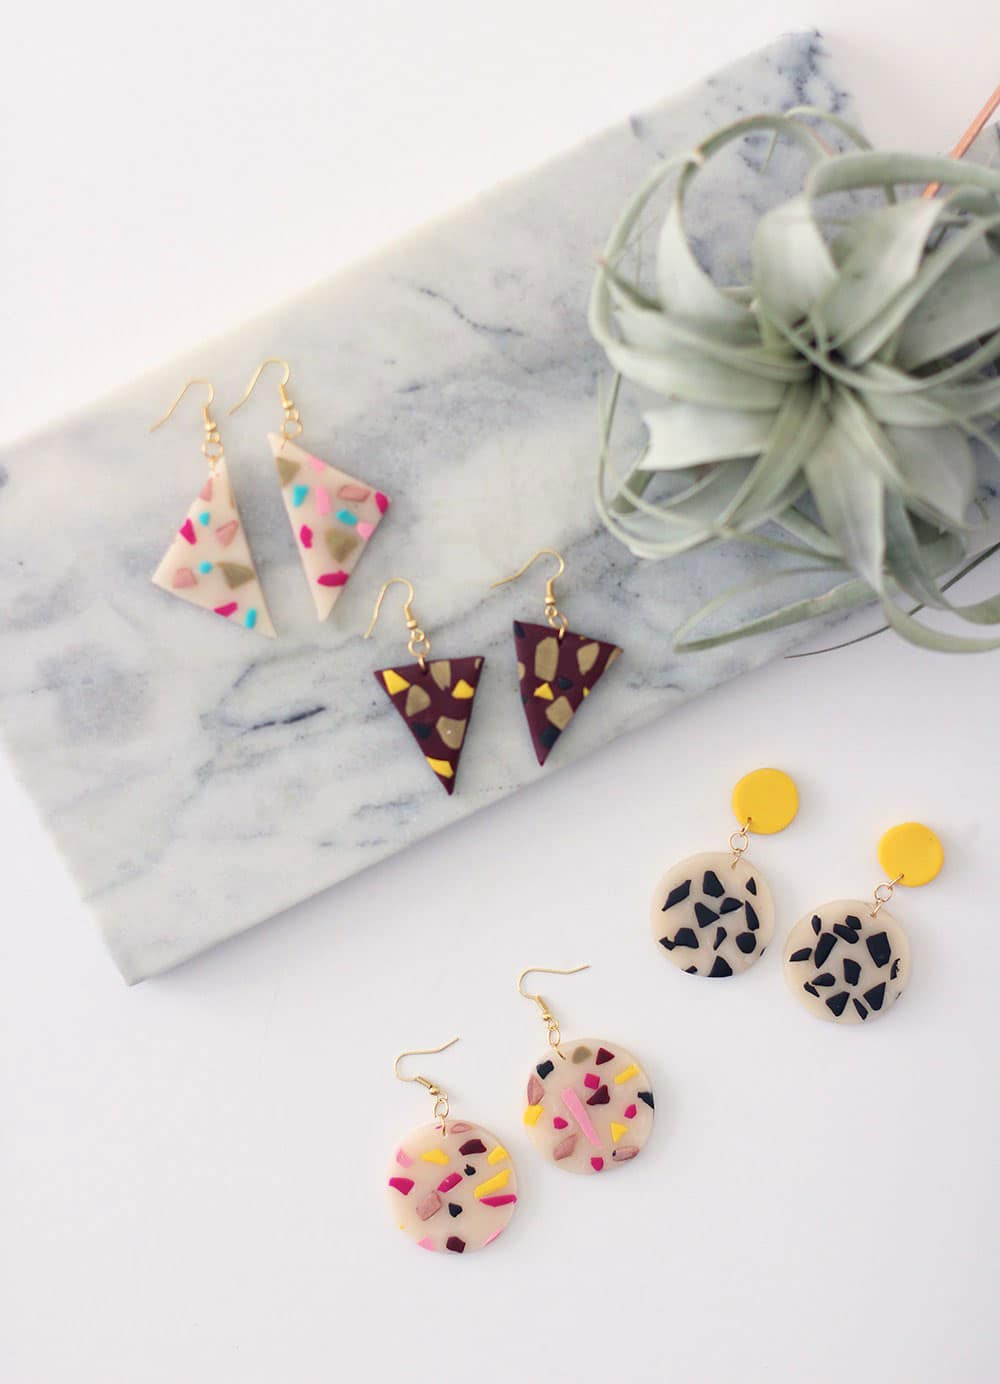 When you make your own terrazzo clay earrings you can make them any shape you like!